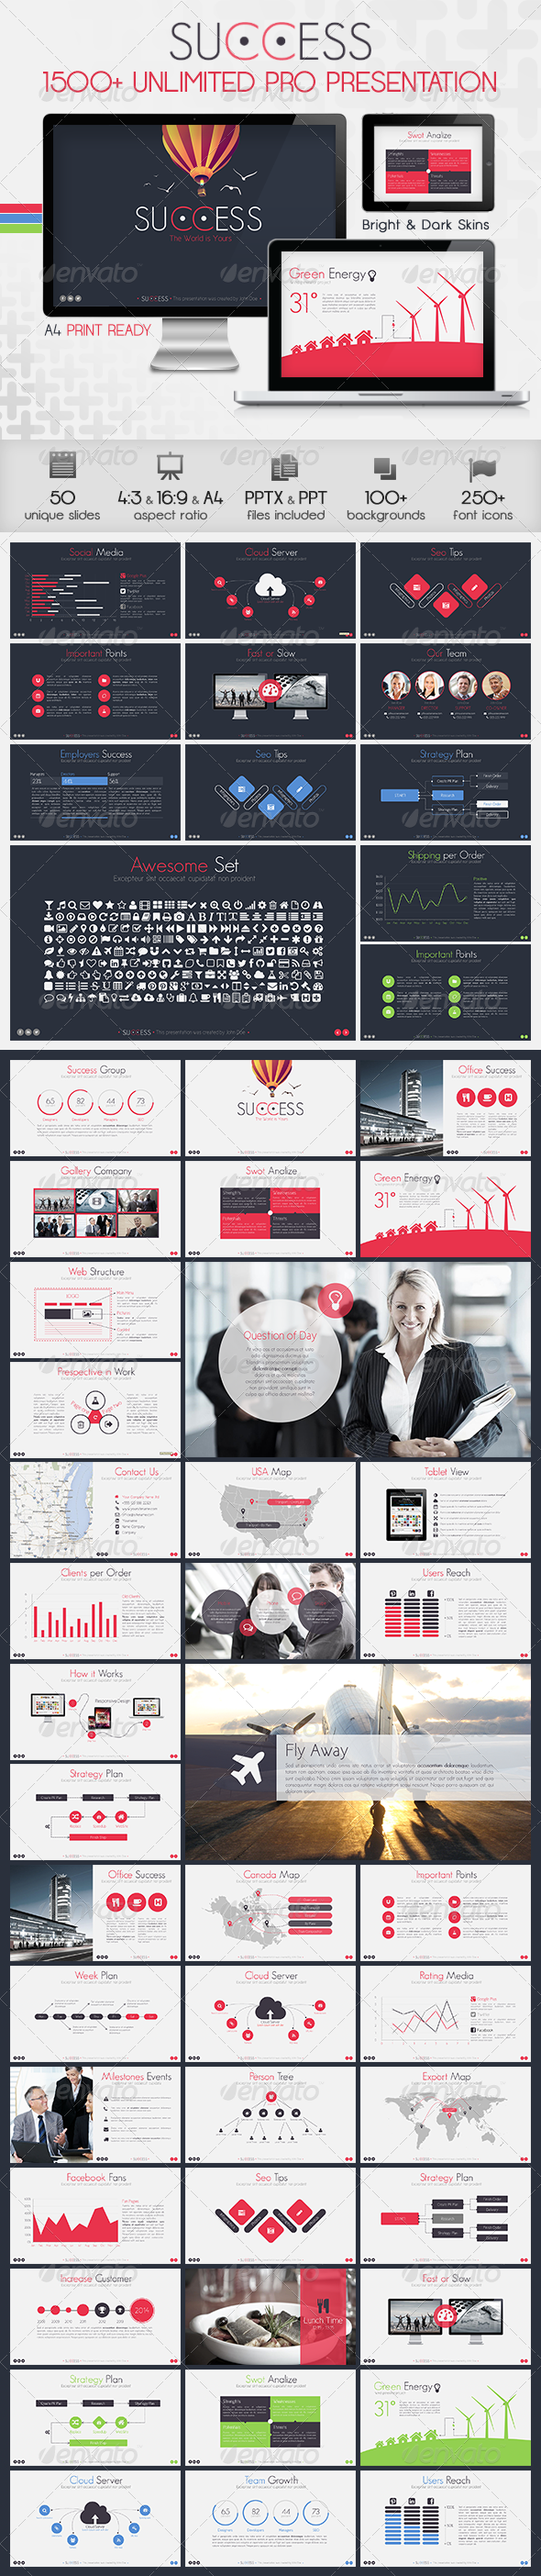 Success powerpoint presentation template by bandidos graphicriver success powerpoint presentation template business powerpoint templates alramifo Gallery